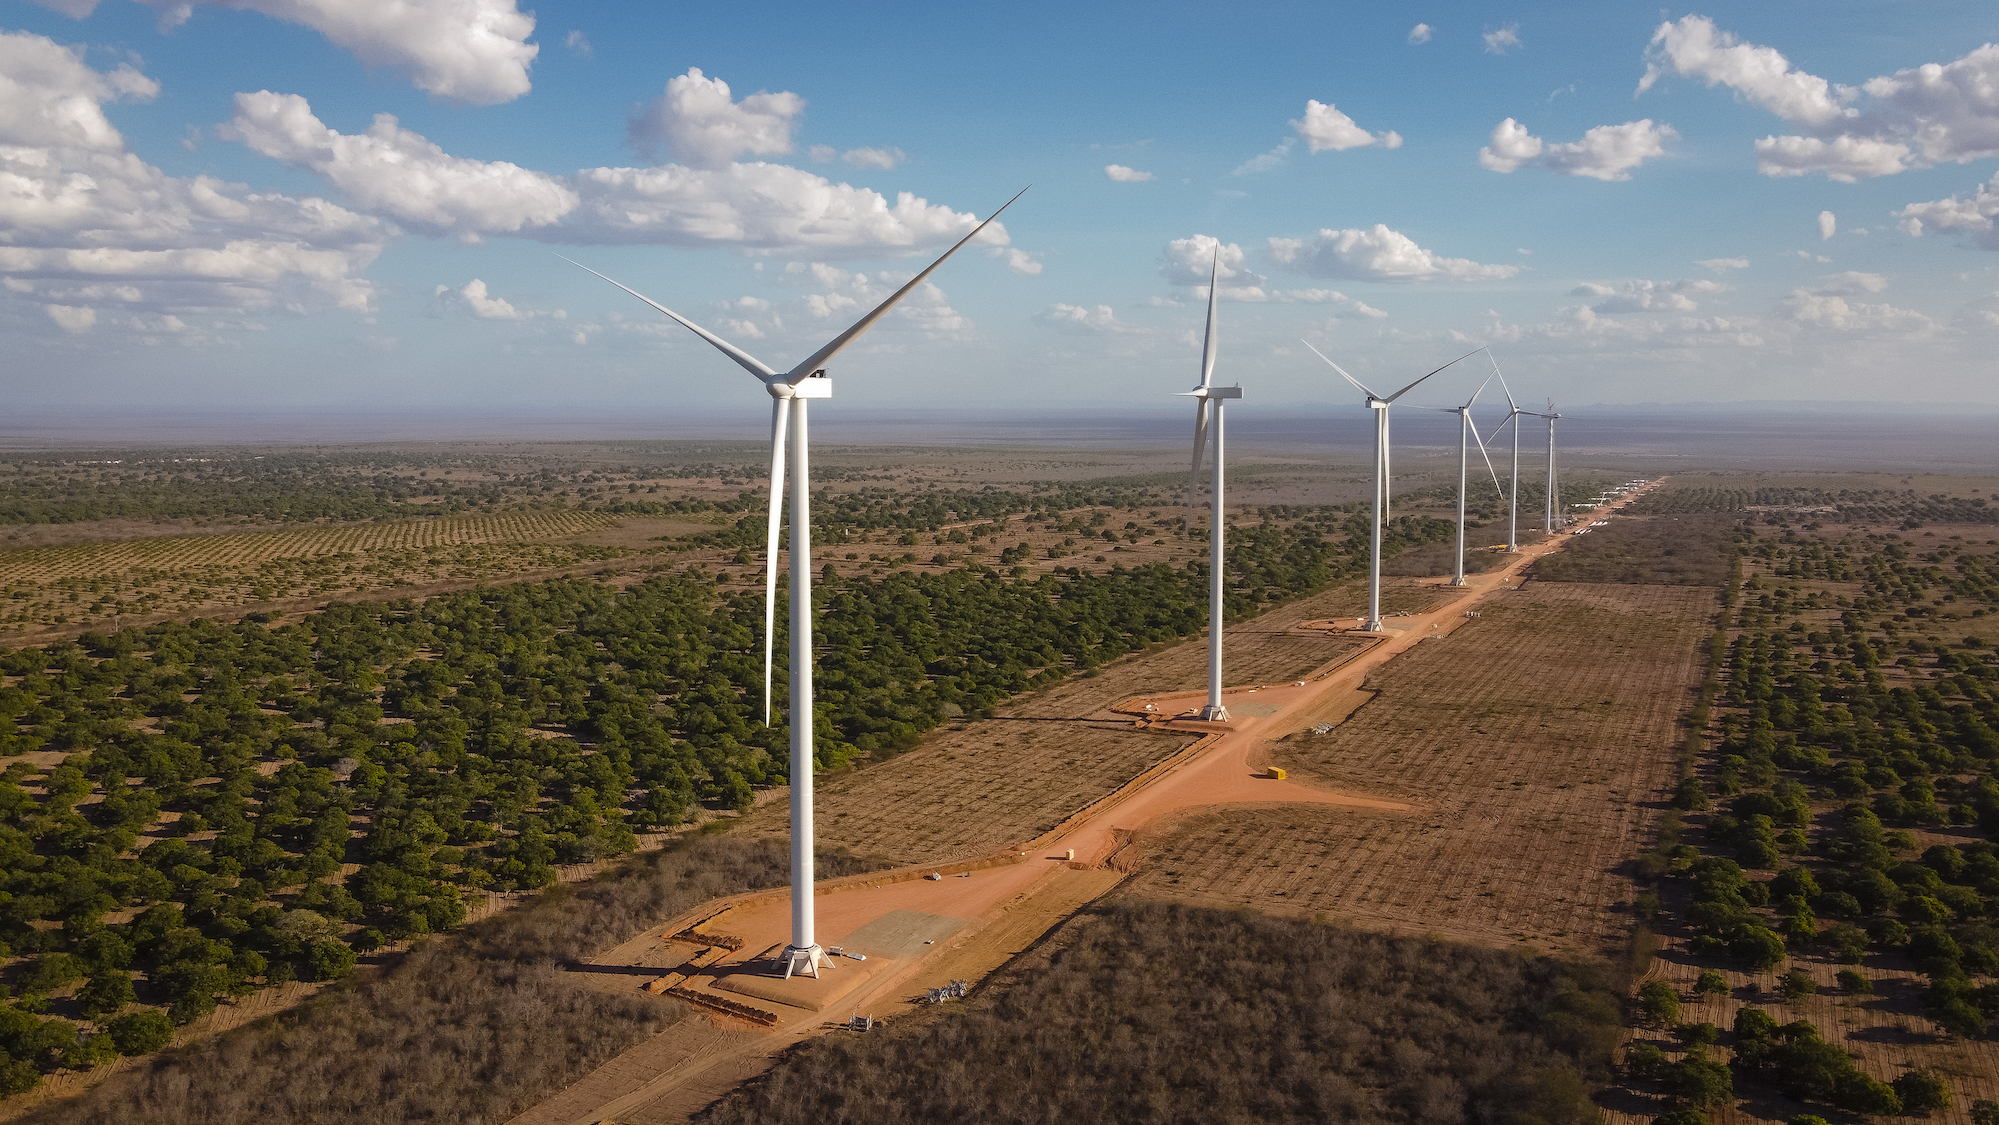 An artist's rendering of the wind turbines to be installed at the Canudos wind farm. Image courtesy of Voltalia.